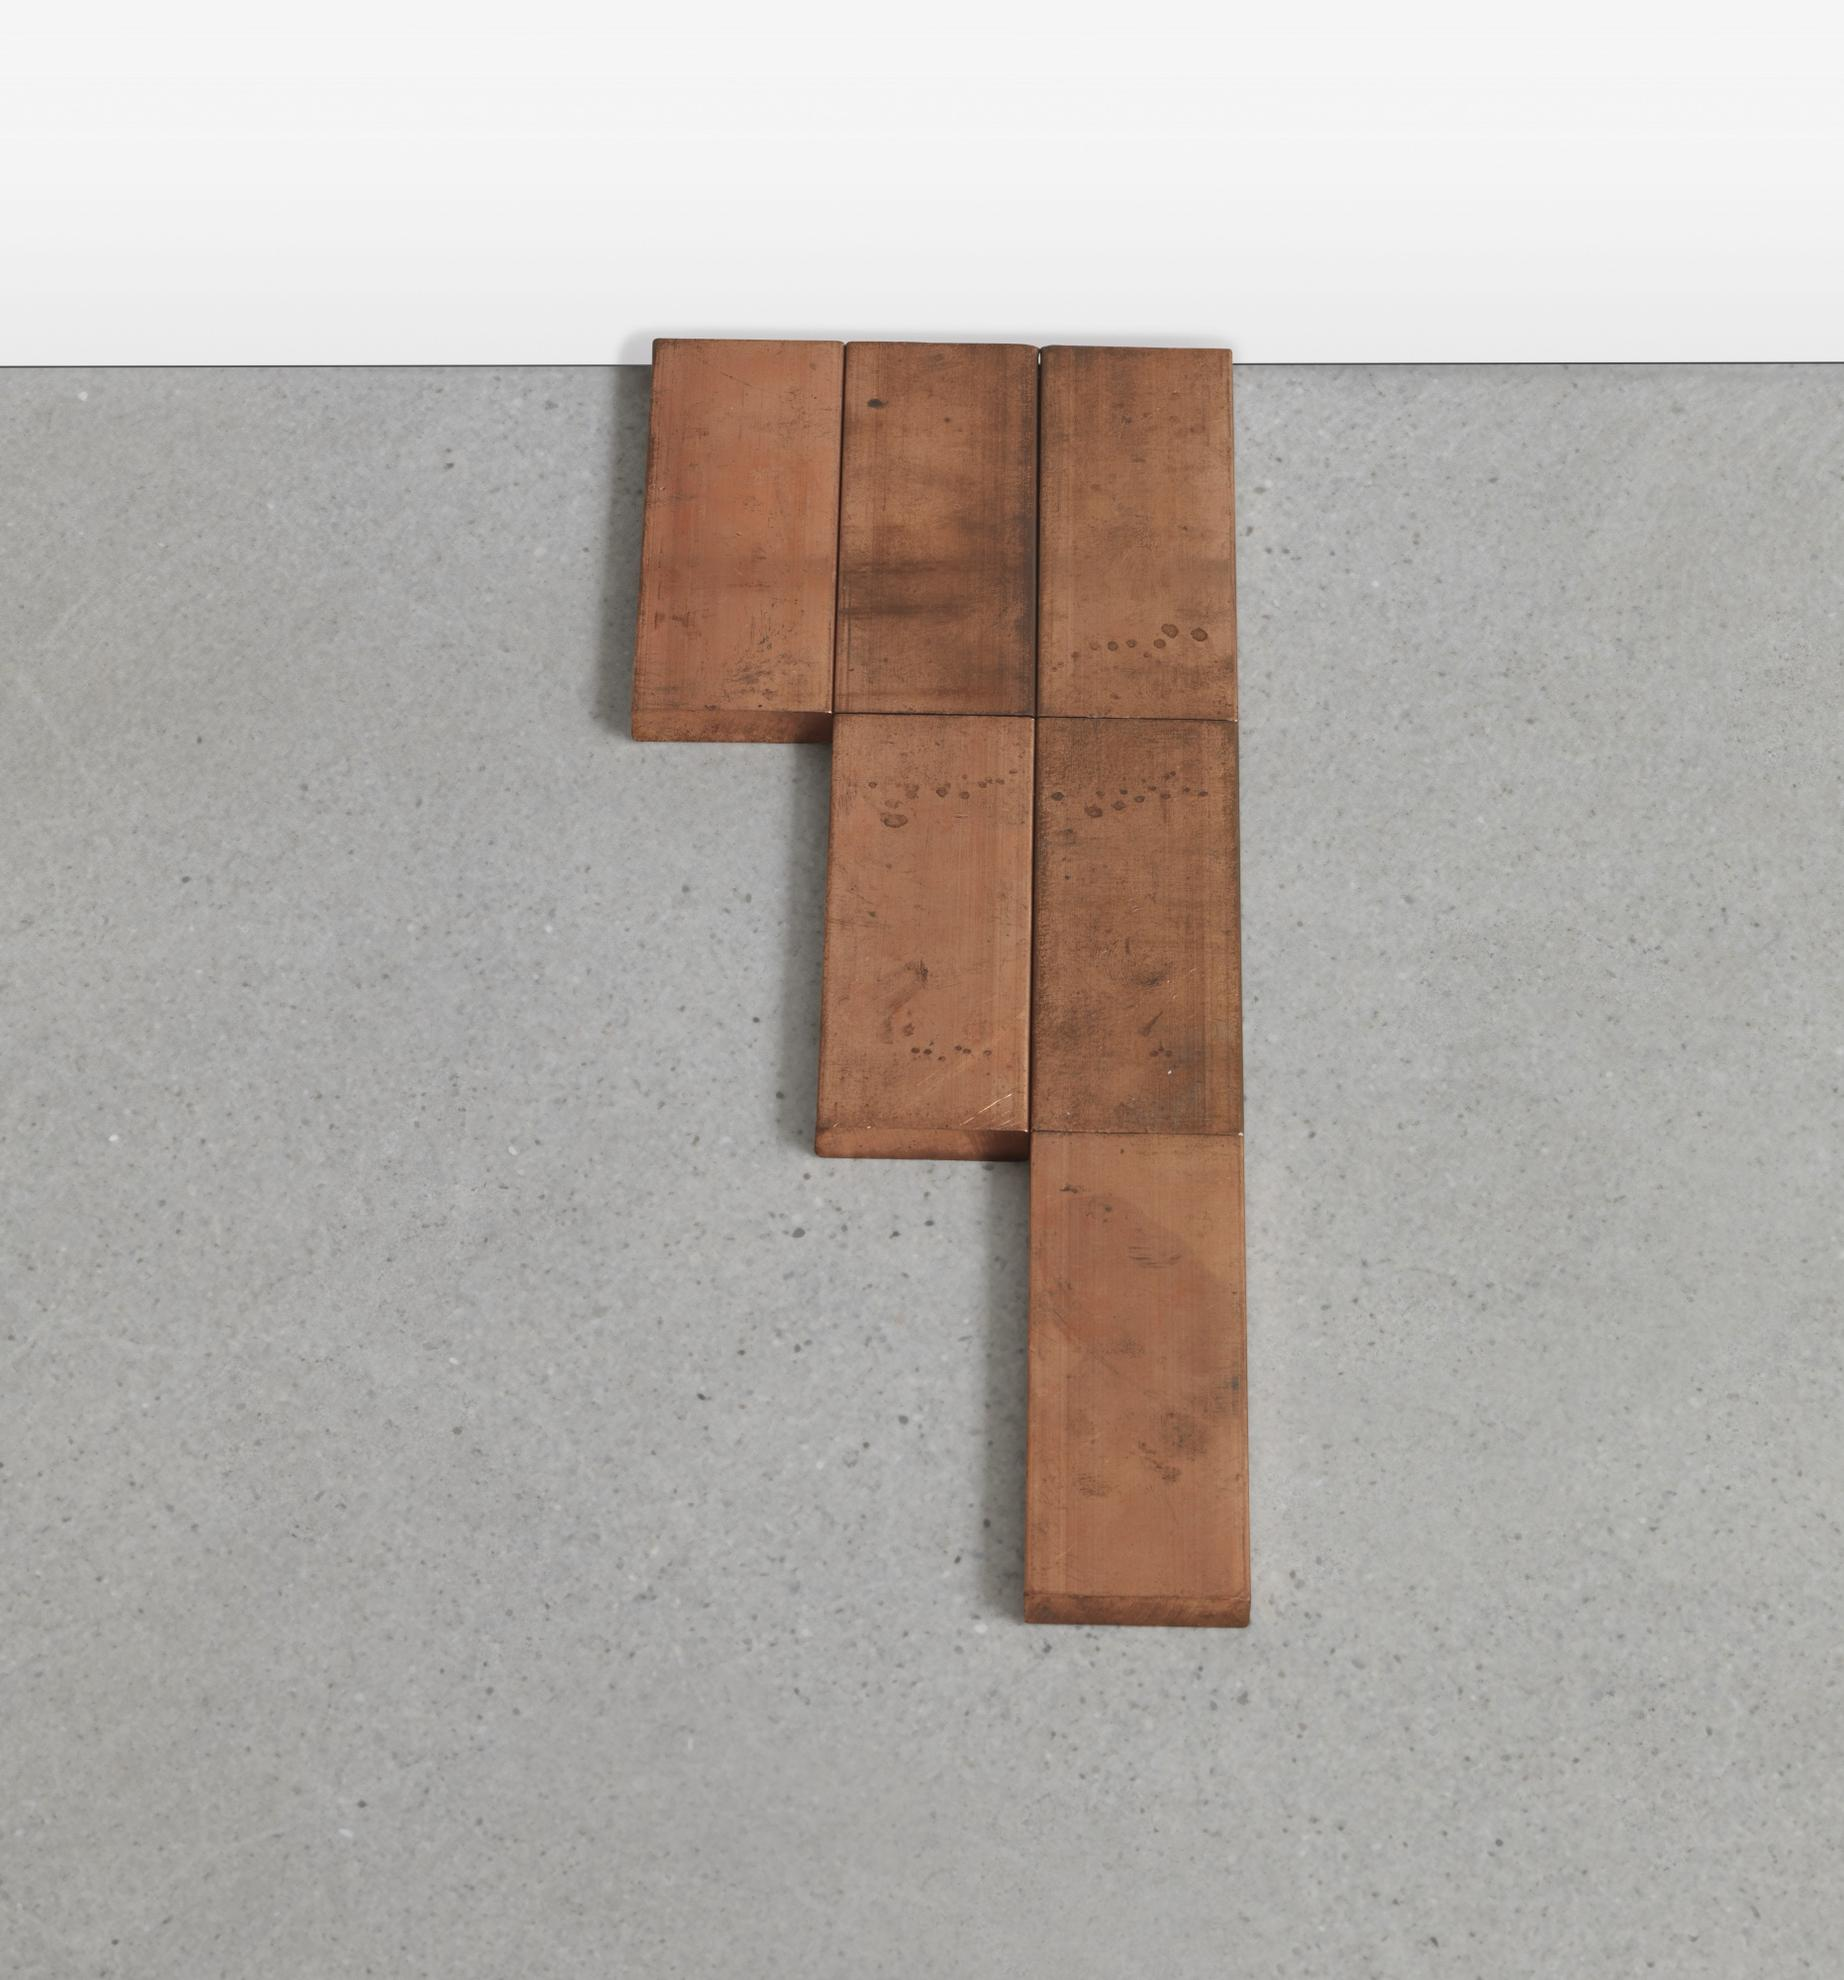 Carl Andre-Small Glarus Copper Rectangle Σ 3-2007